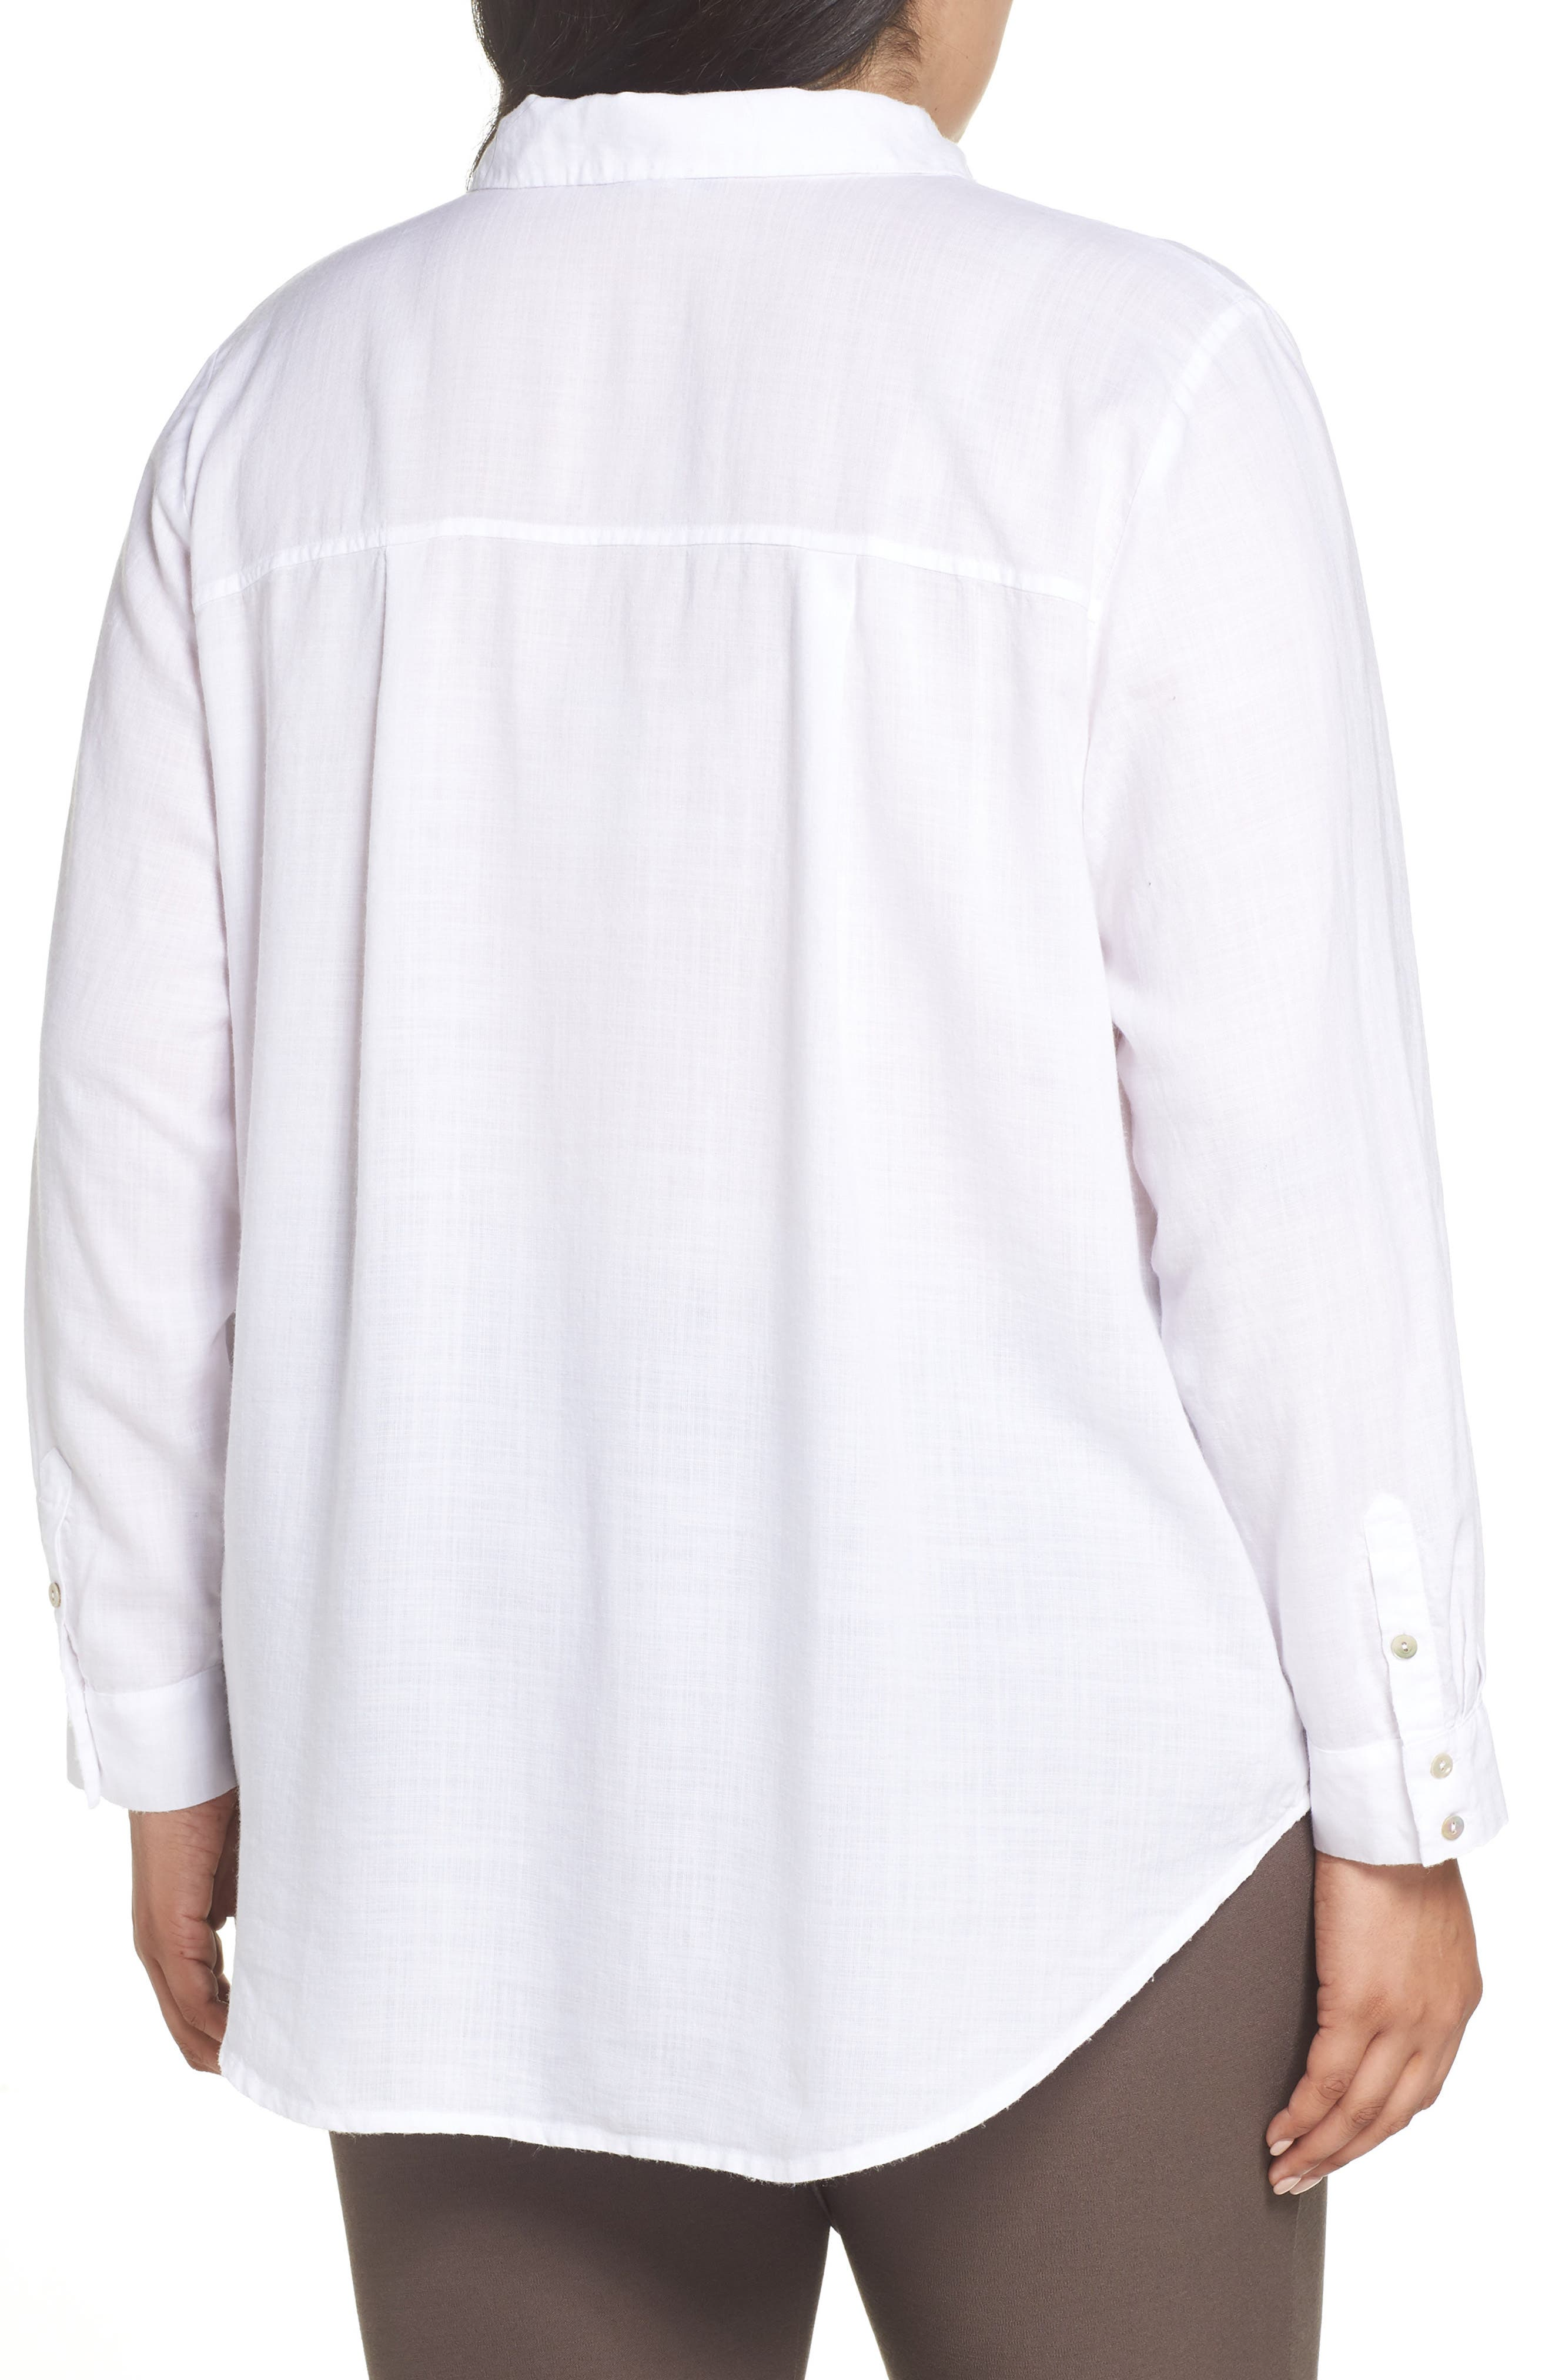 EILEEN FISHER, Tencel<sup>®</sup> Lyocell Shirt, Alternate thumbnail 2, color, WHITE